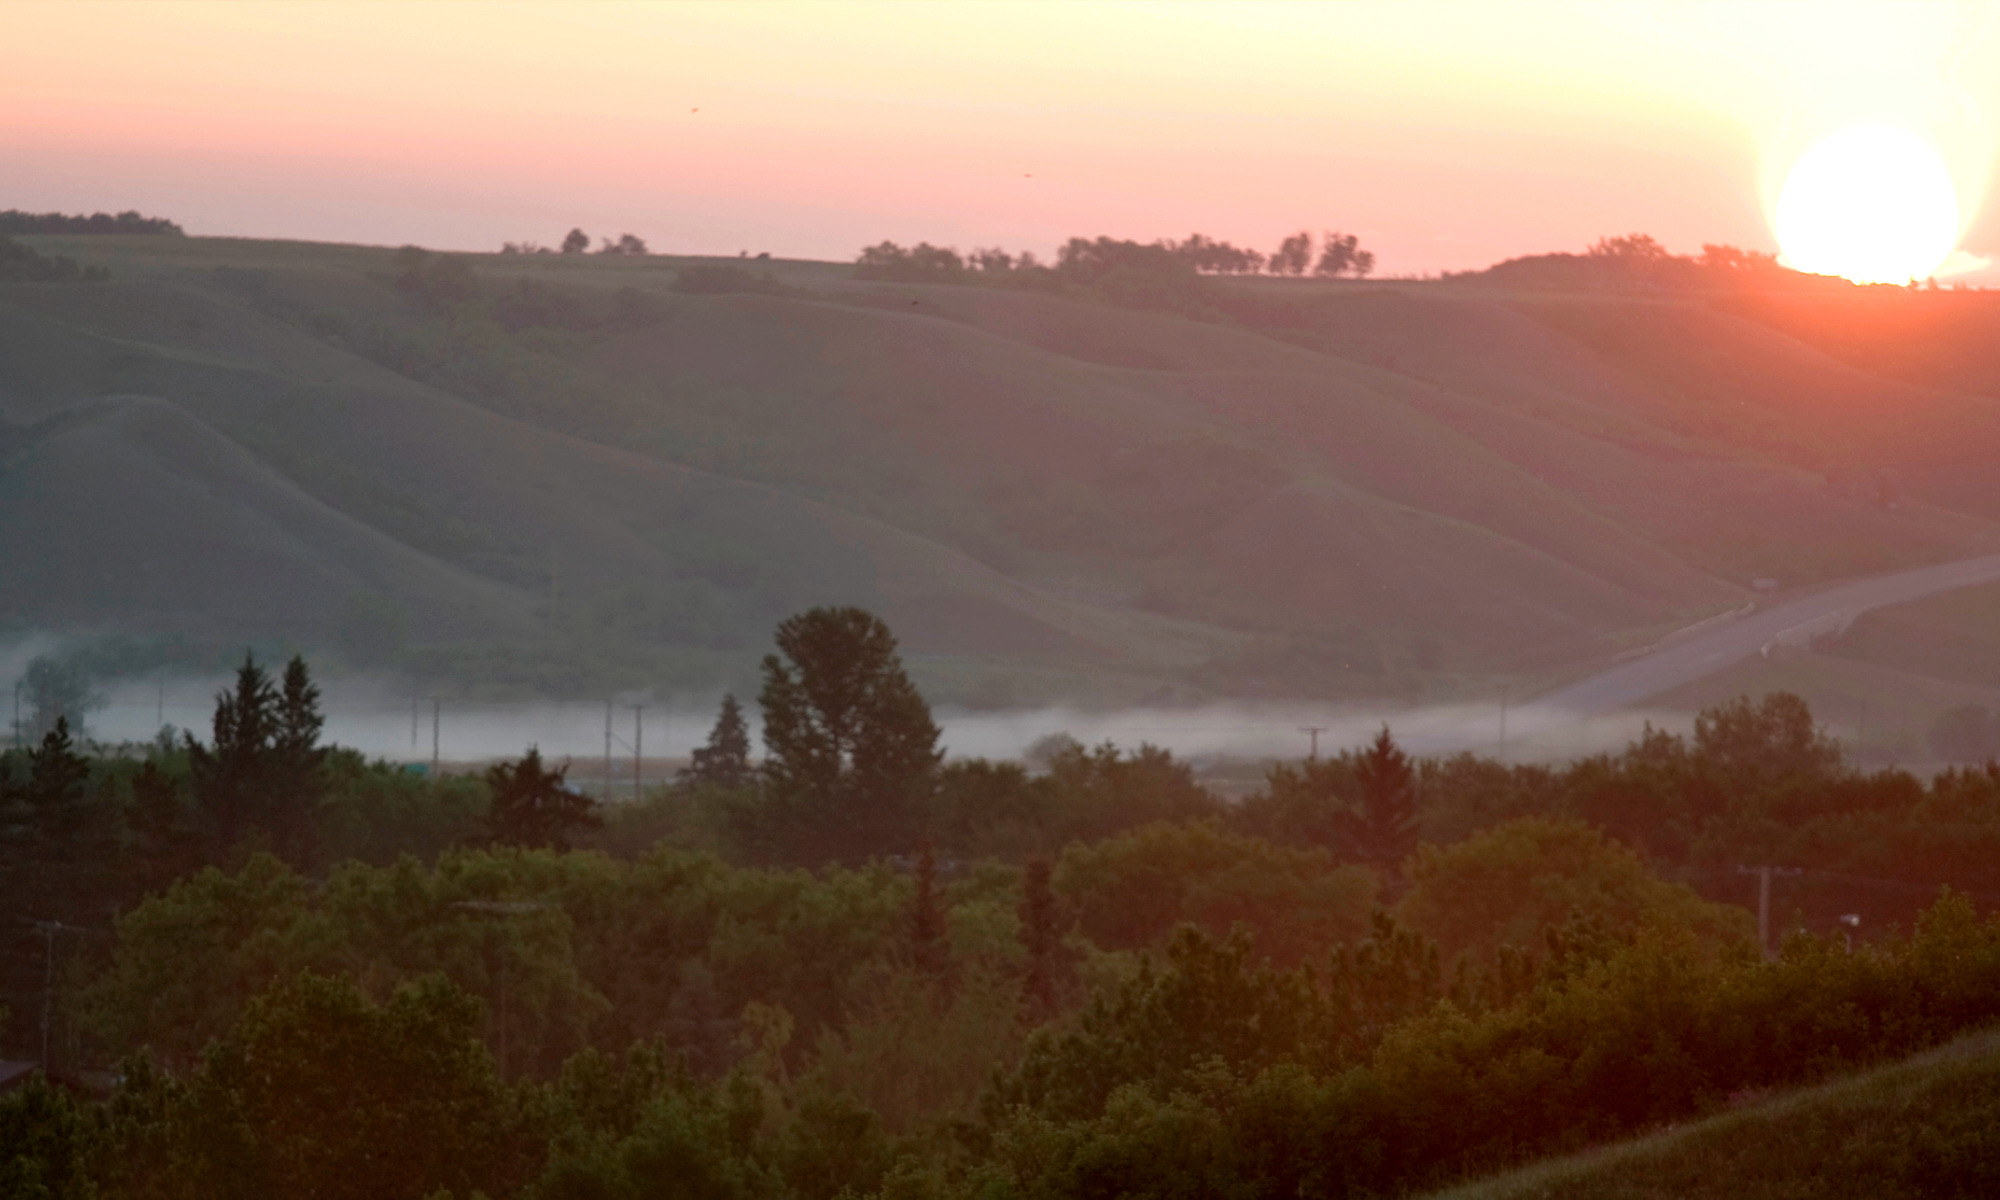 Misty morning in the valley